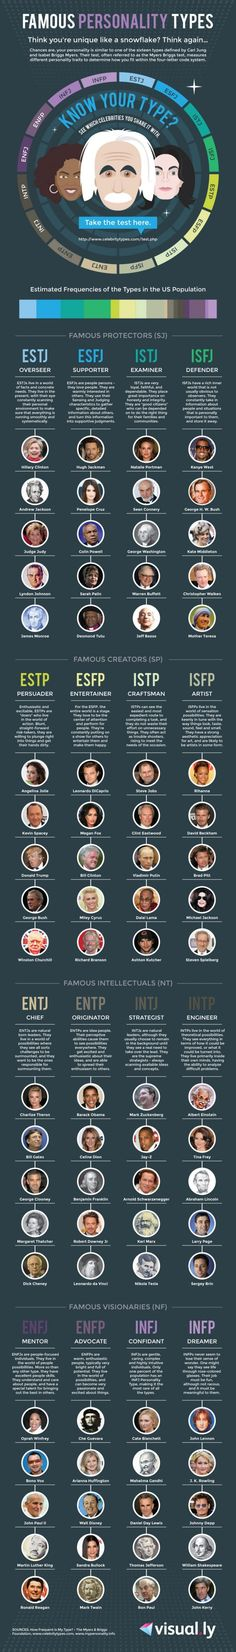 Which famous thinkers and doers are you like, according to your personality test? Find out with this chart!